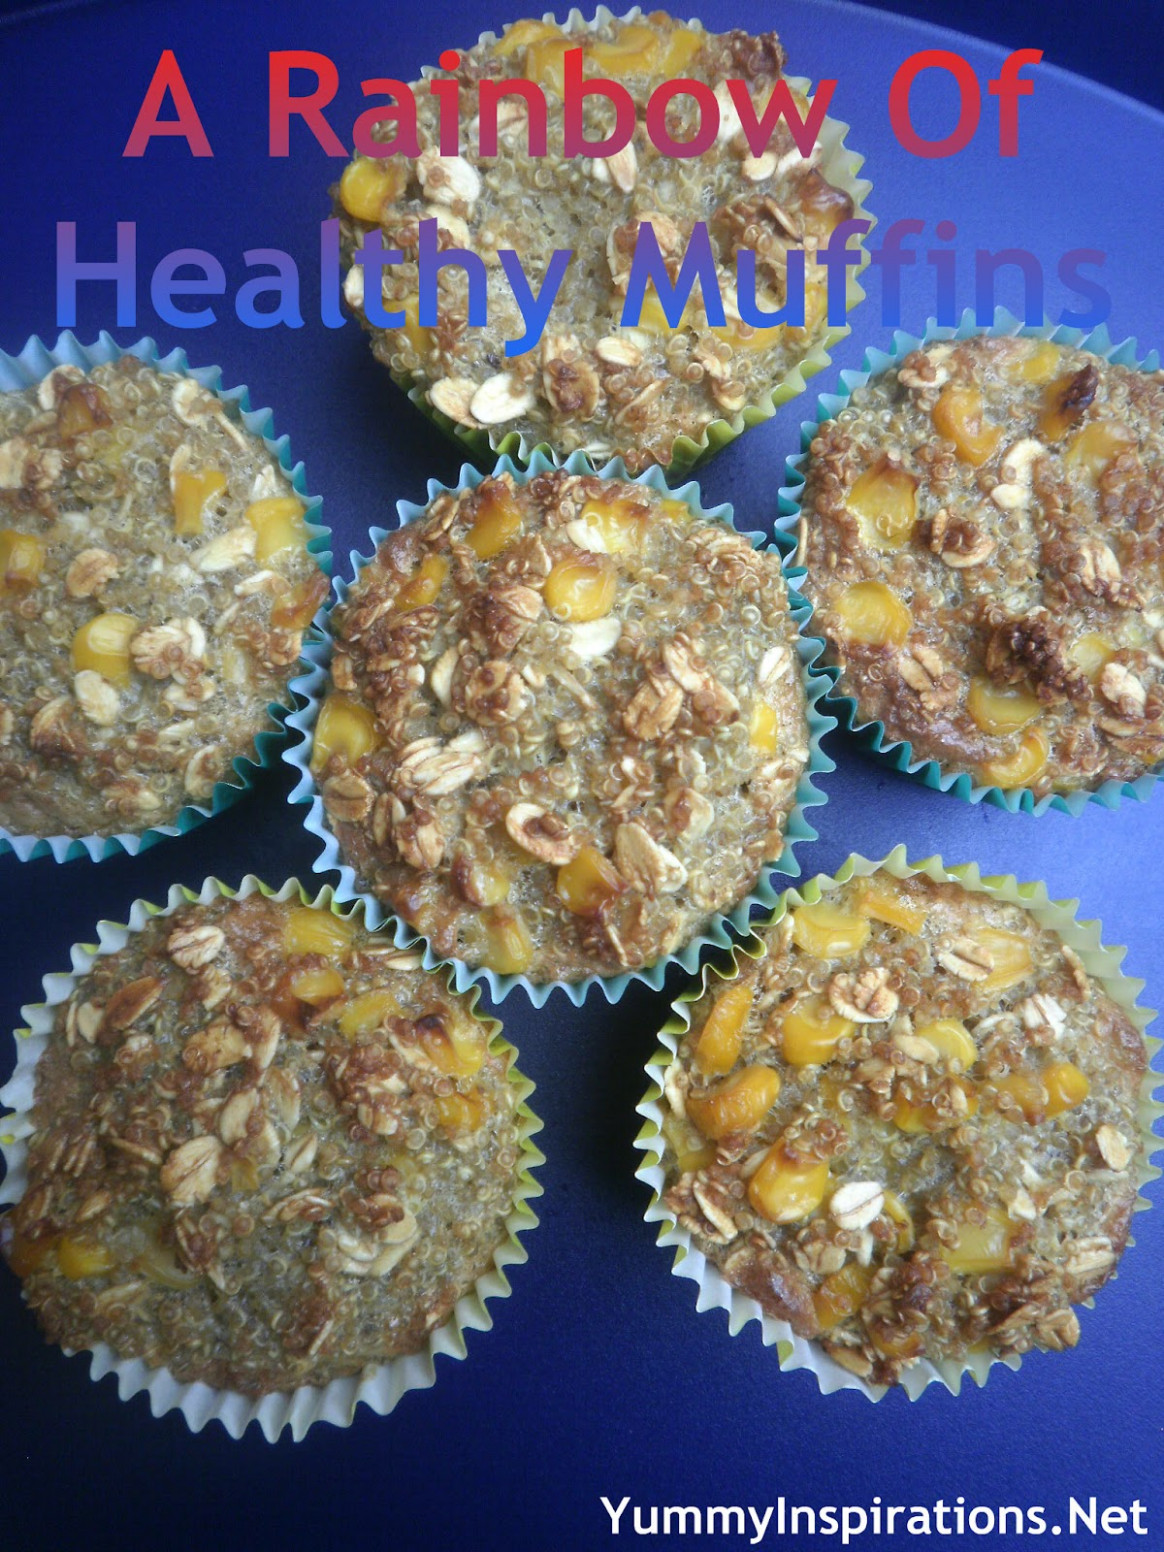 A Rainbow of Healthy Muffins